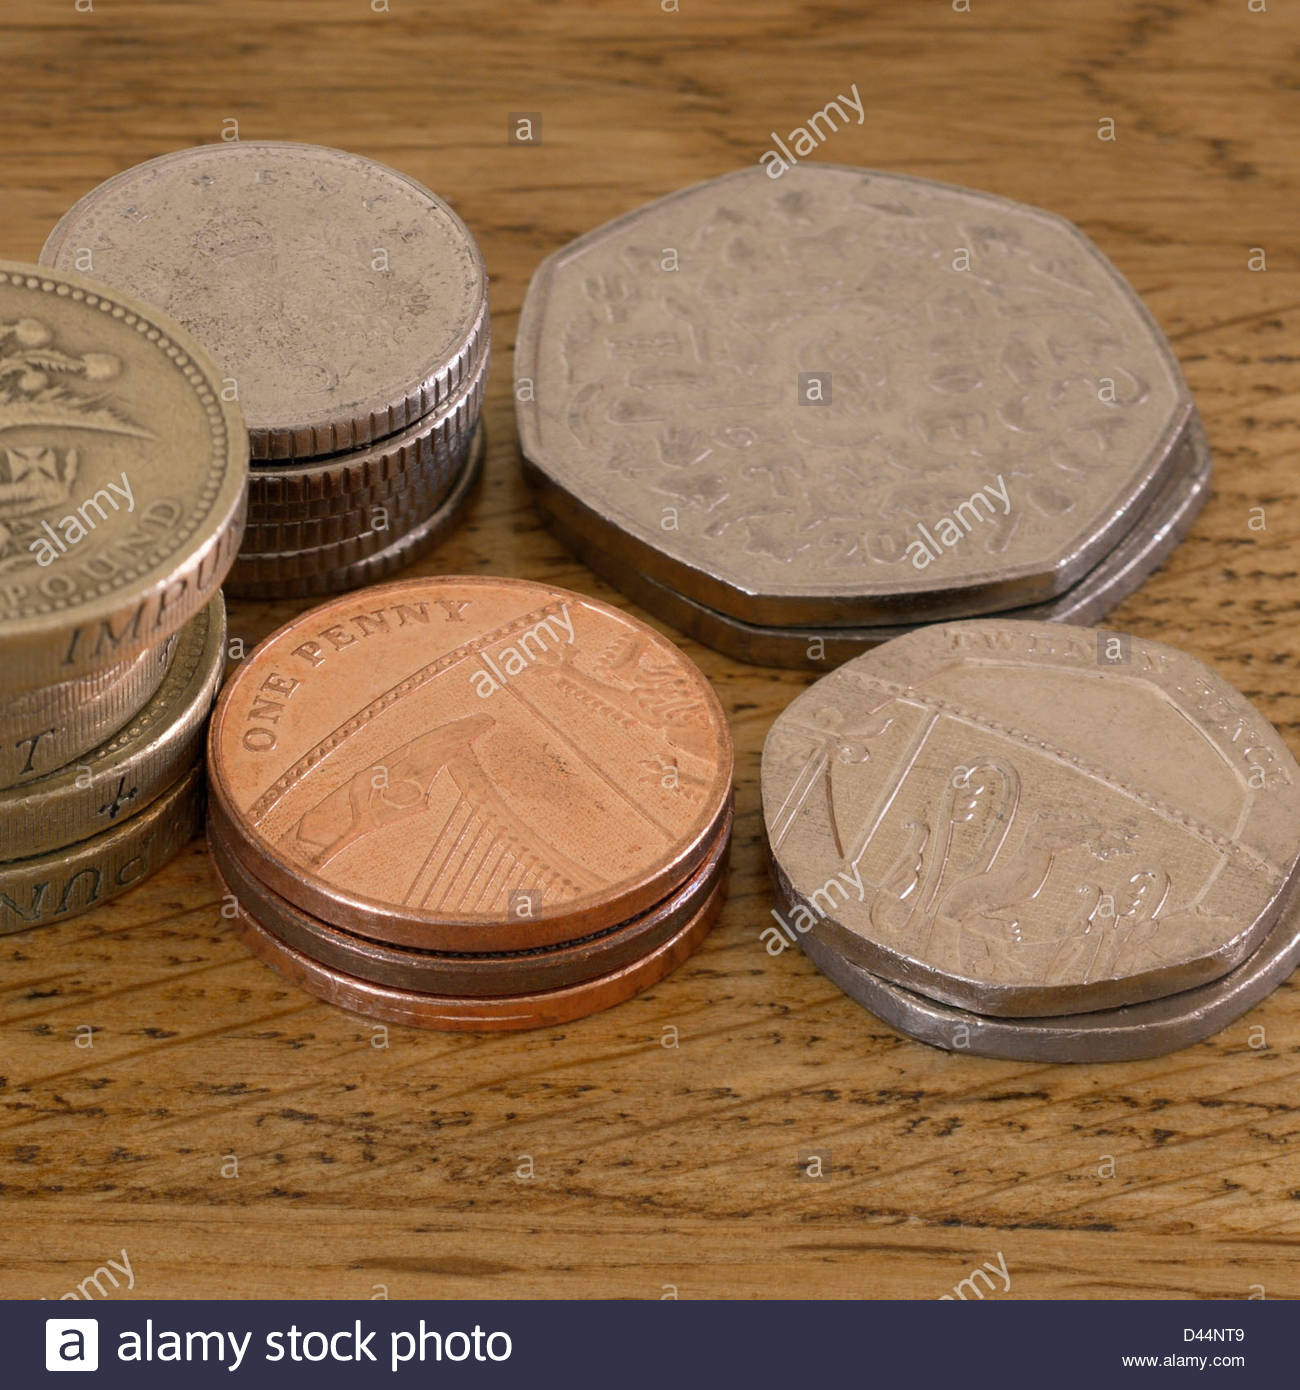 Piled coins on a table Stock Photo